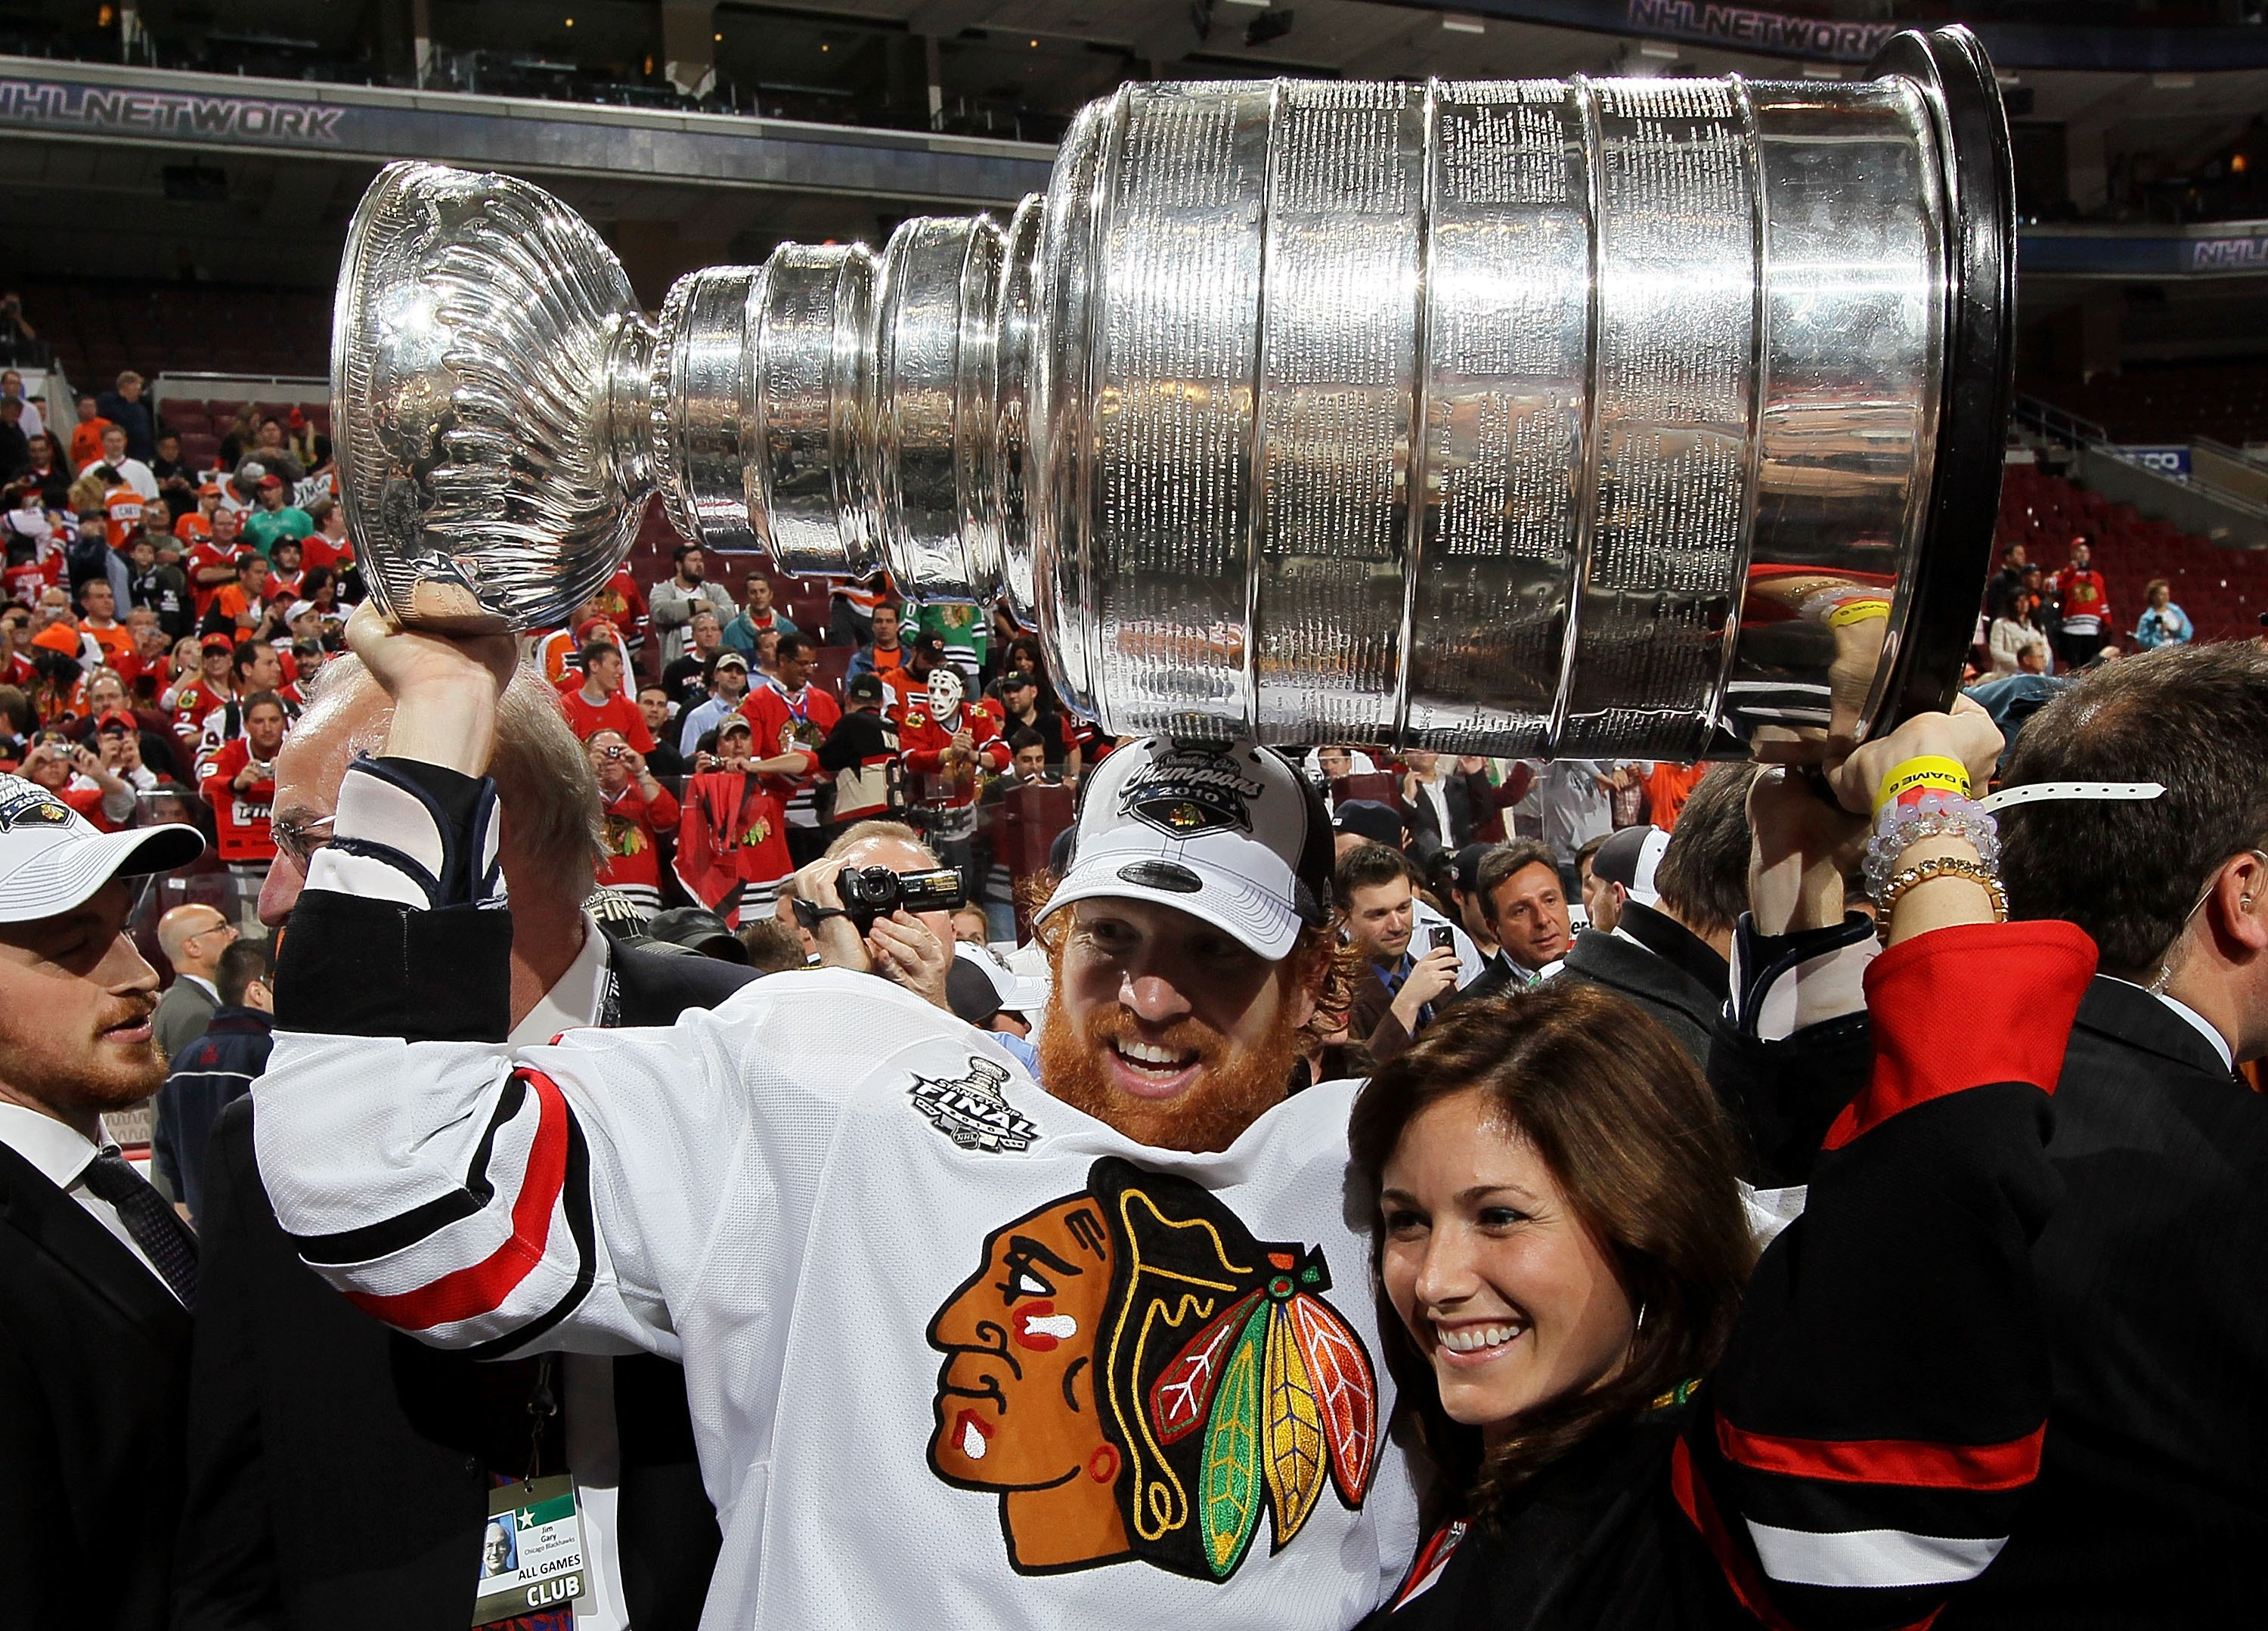 Nhl Which Playoff Team Needs To Win The Stanley Cup The Most